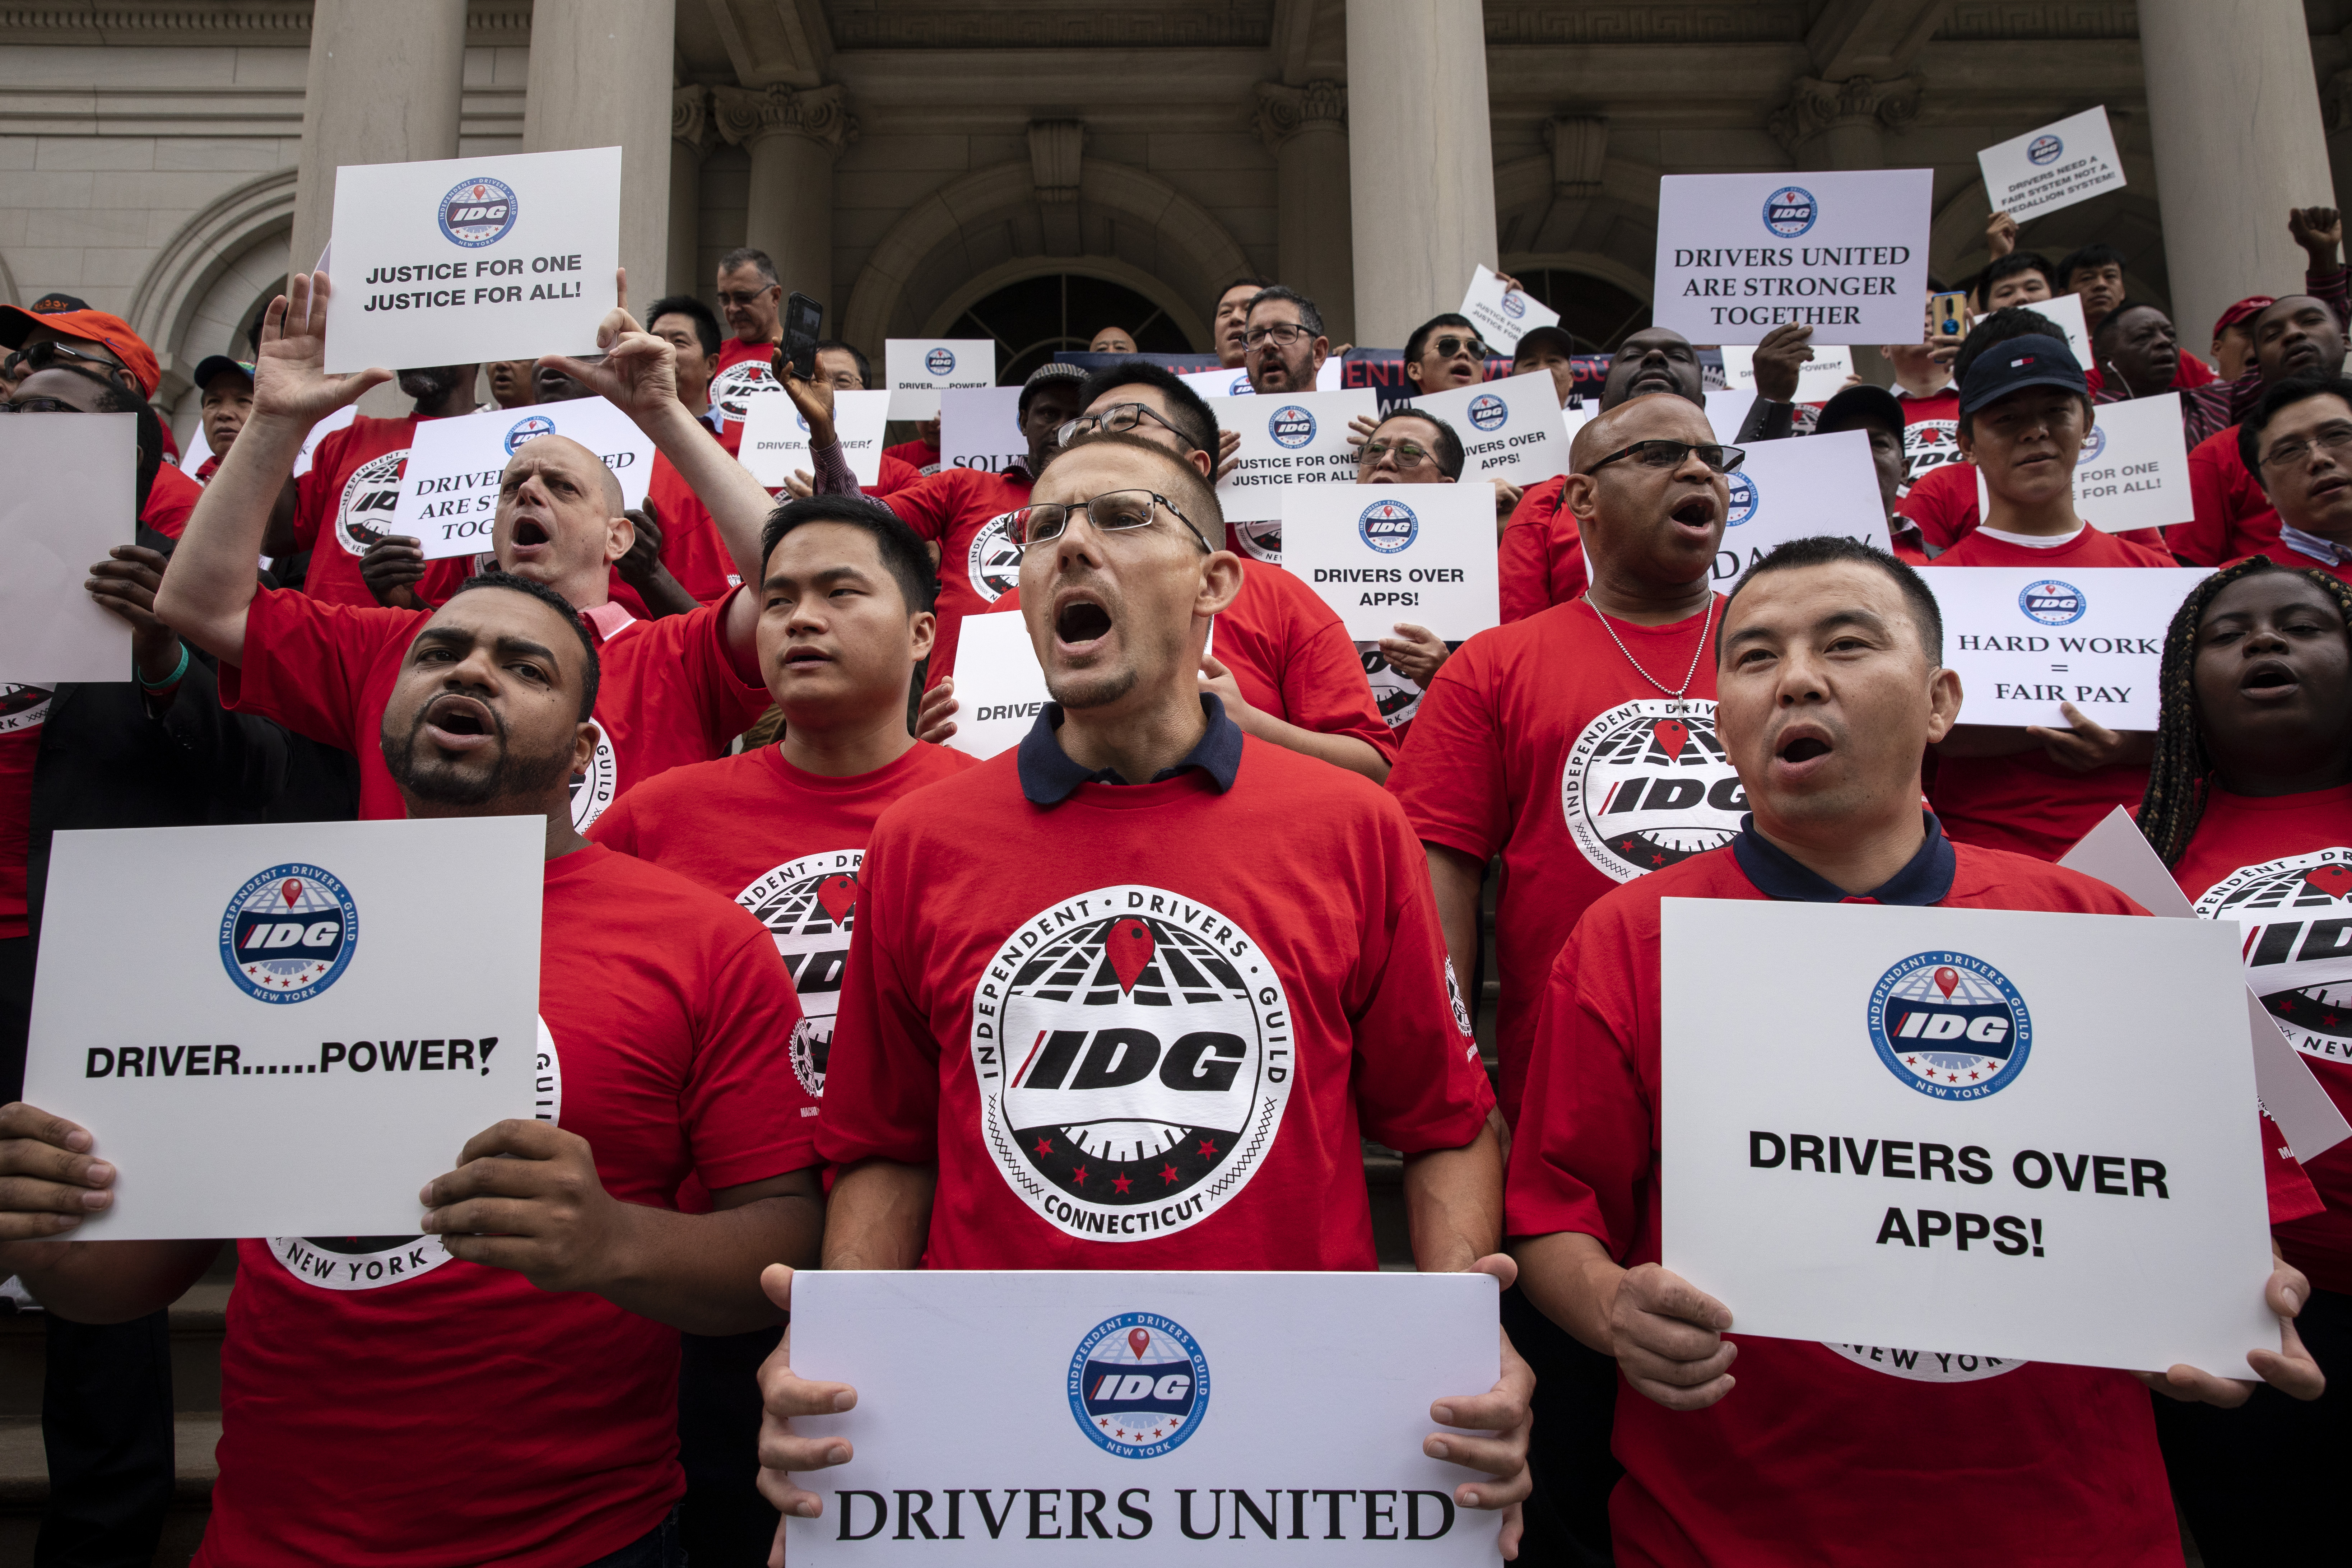 Ride-share drivers and supporters with the Independent Drivers Guild protest outside New York City Hall as they rally for wage enforcement and a drivers' bill of rights, on September 10, 2019 in New York City. (Photo by Drew Angerer/Getty Images)